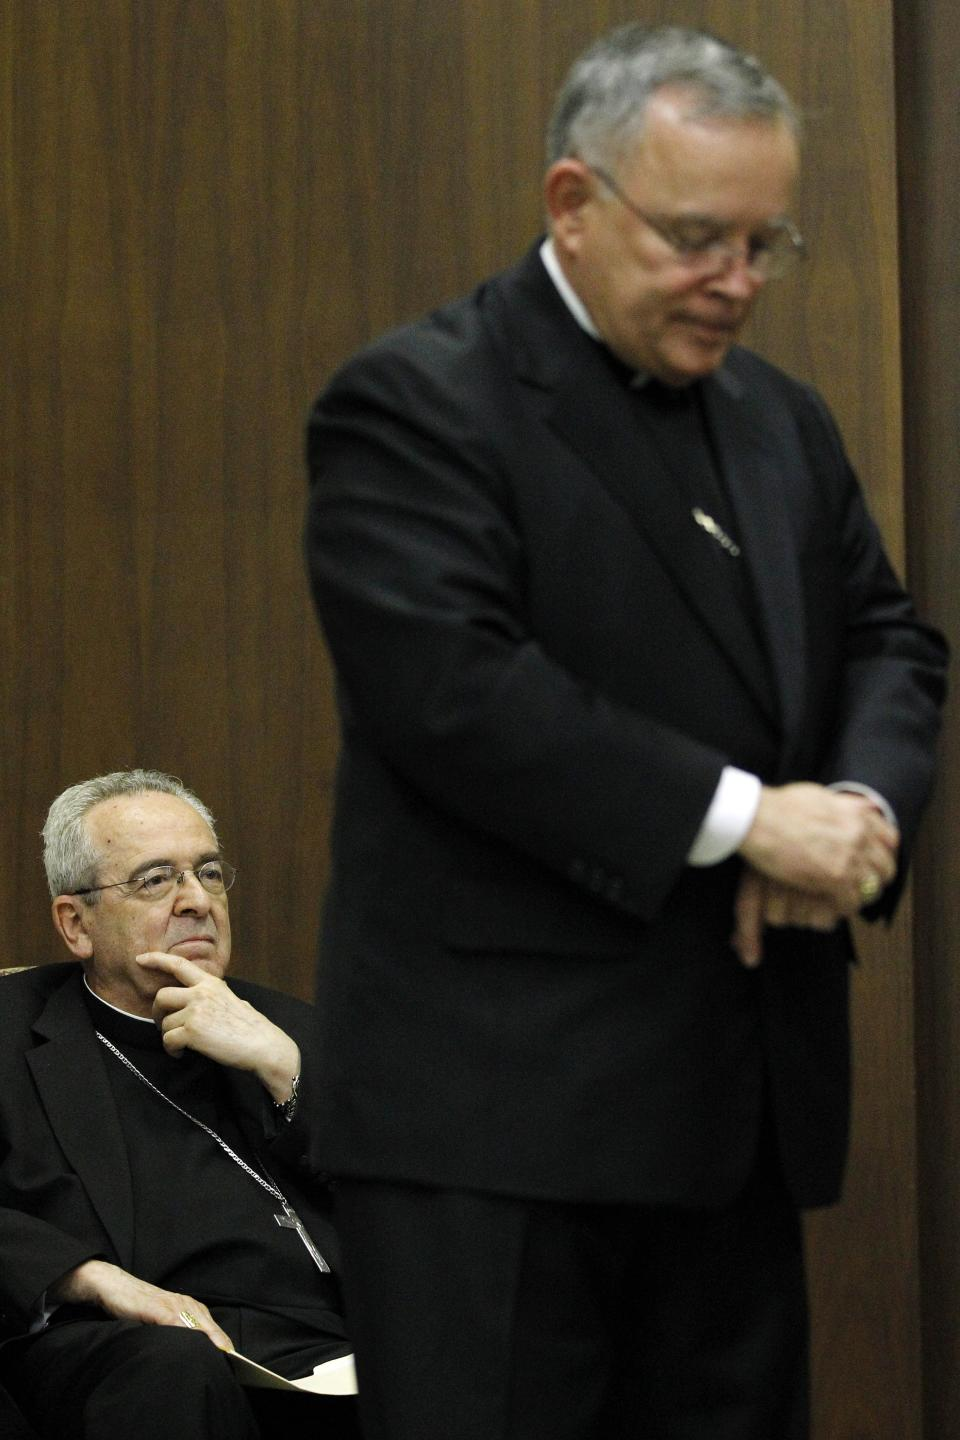 Cardinal Justin Rigali, left and Denver Archbishop Charles Chaput are seen during a news conference Tuesday, July 19, 2011, in Philadelphia. The Vatican on Tuesday named Chaput as Rigali's successor as Archbishop of Philadelphia. (AP Photo/Matt Rourke)